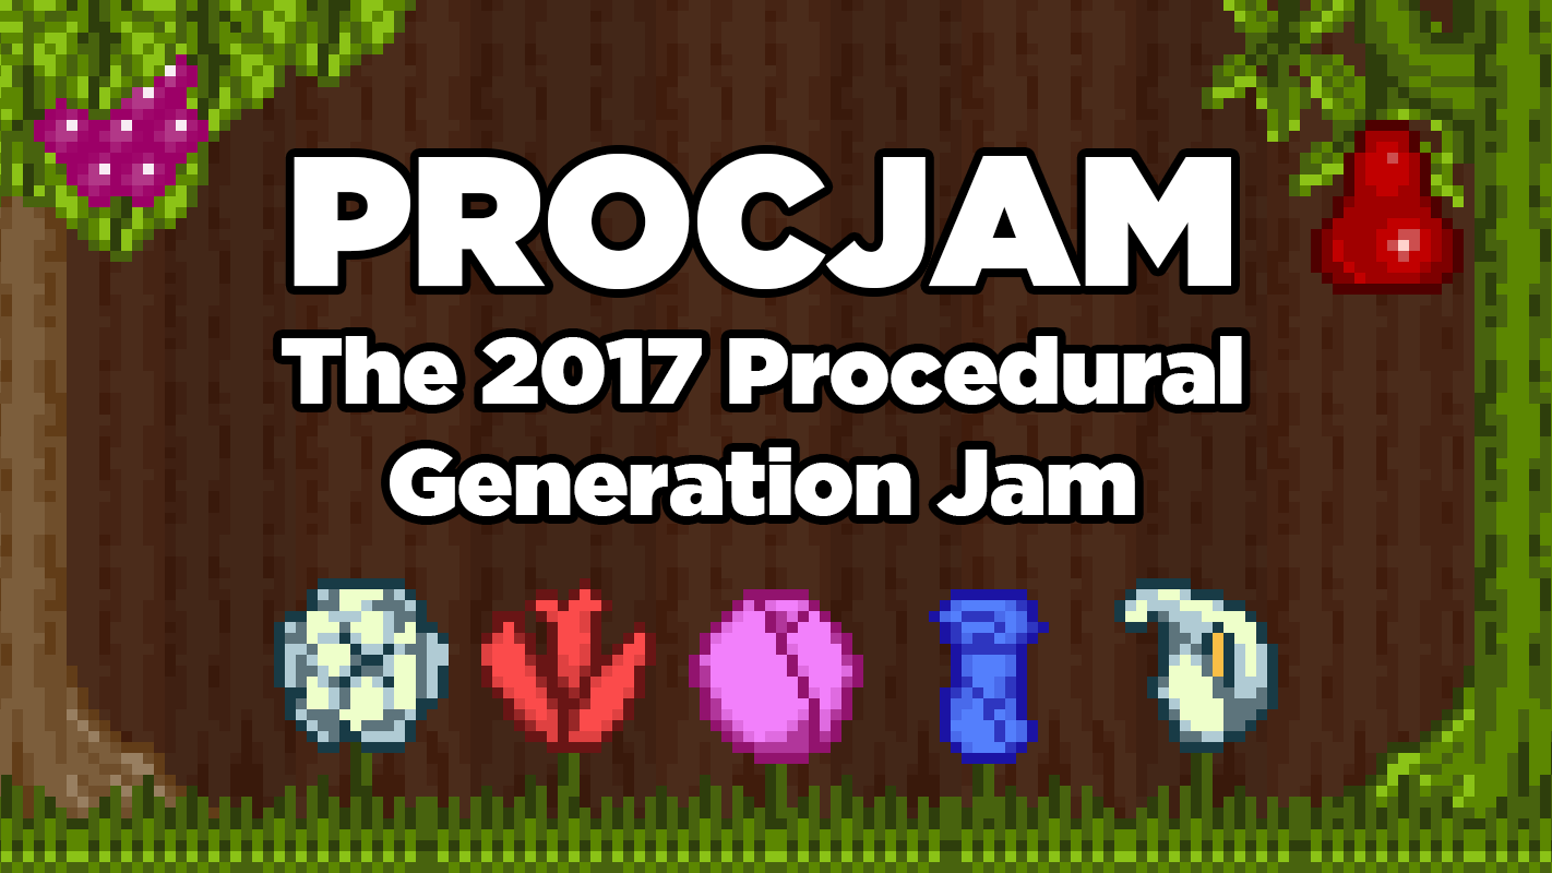 Help us fund art, tutorials, zines and more to support and grow PROCJAM - a community of procedural generation creators!